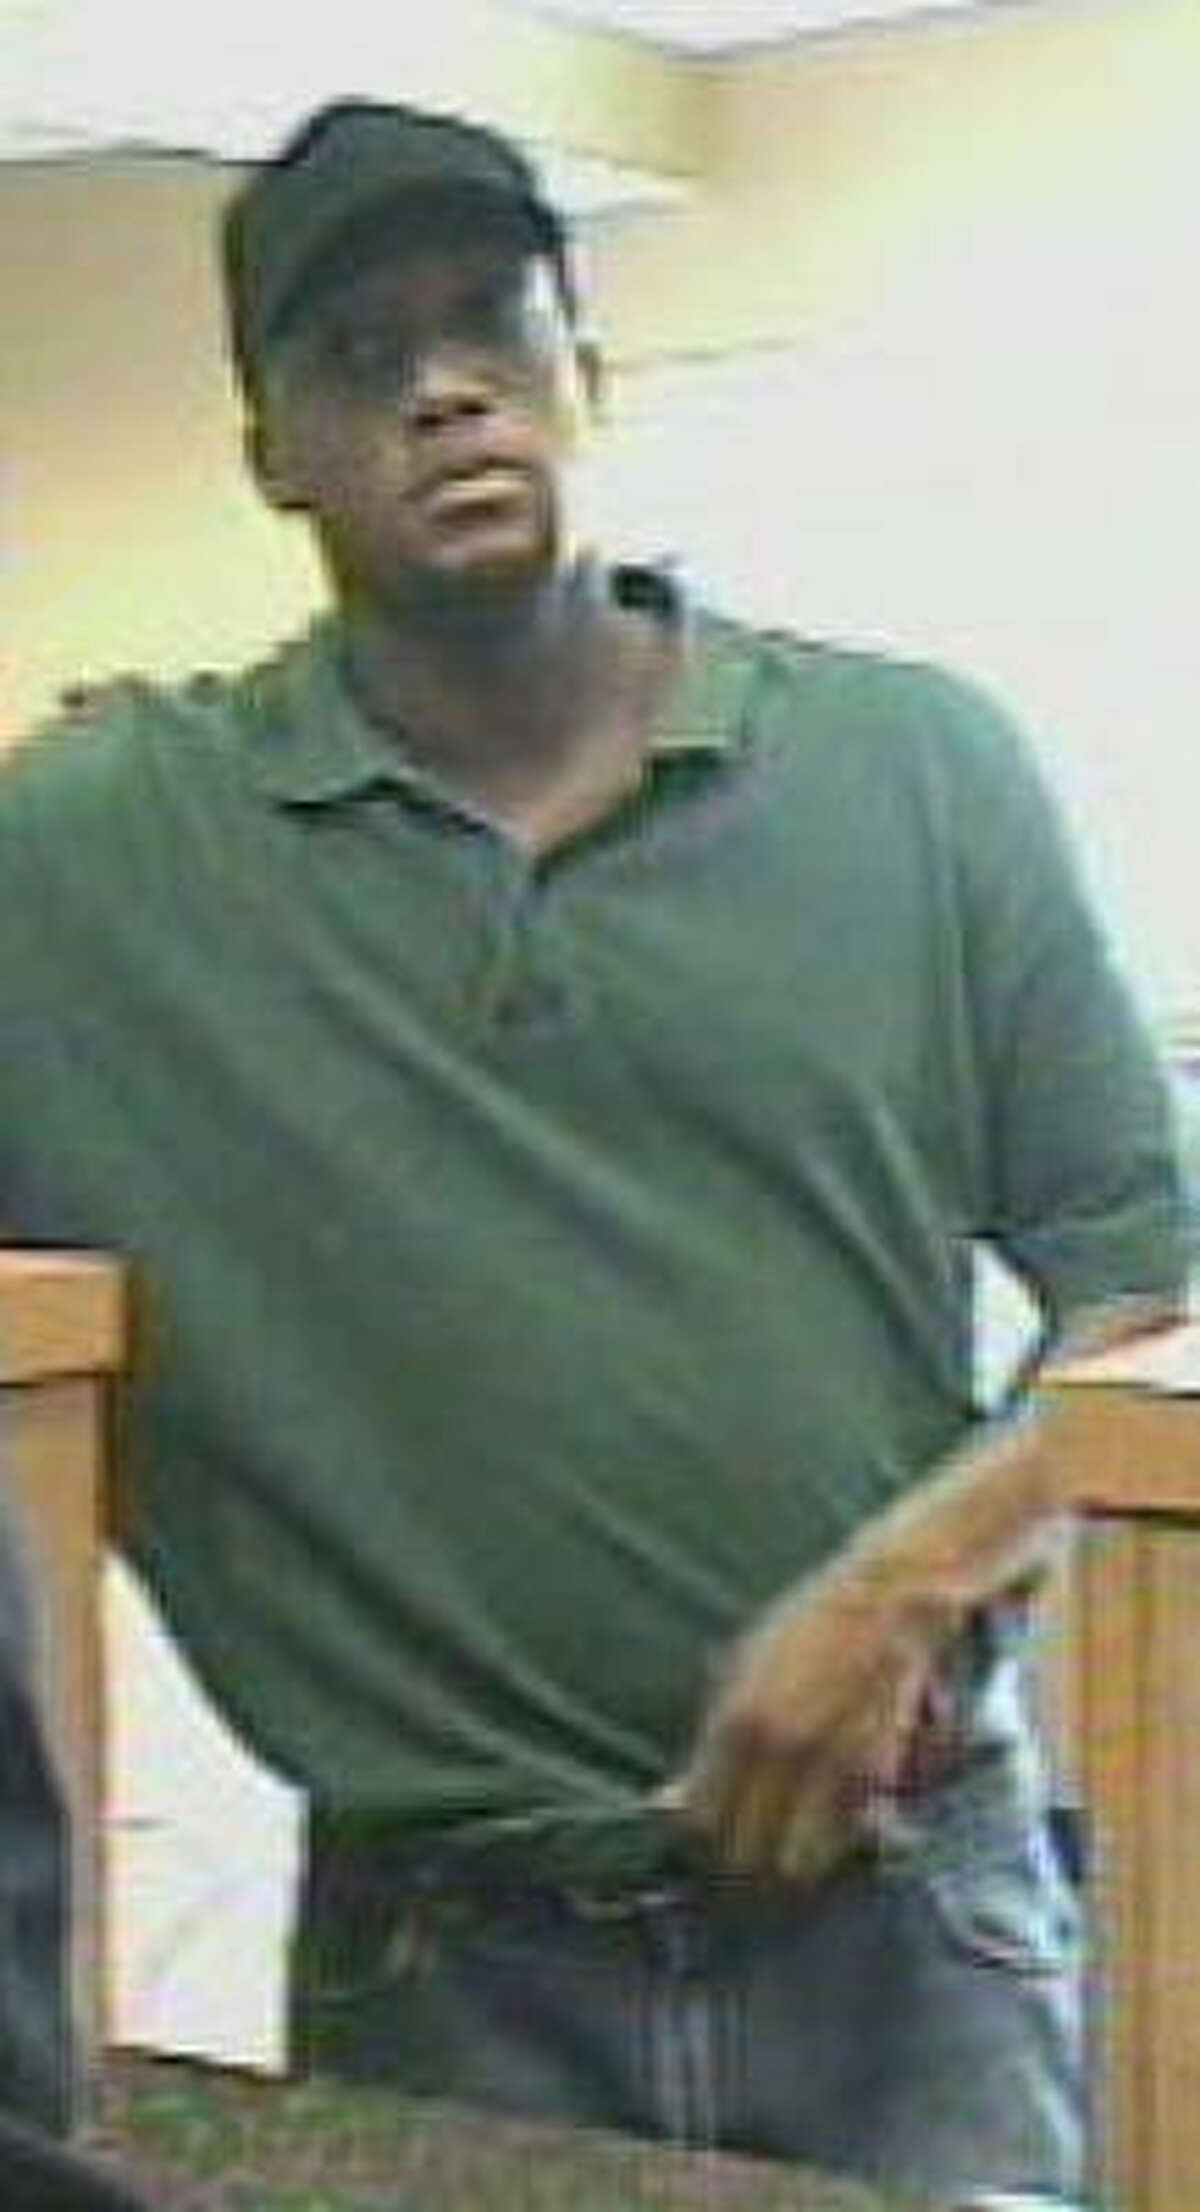 The FBI is looking for this man, whose image appears on surveillance video taken at a Harris County bank that was robbed Monday morning.